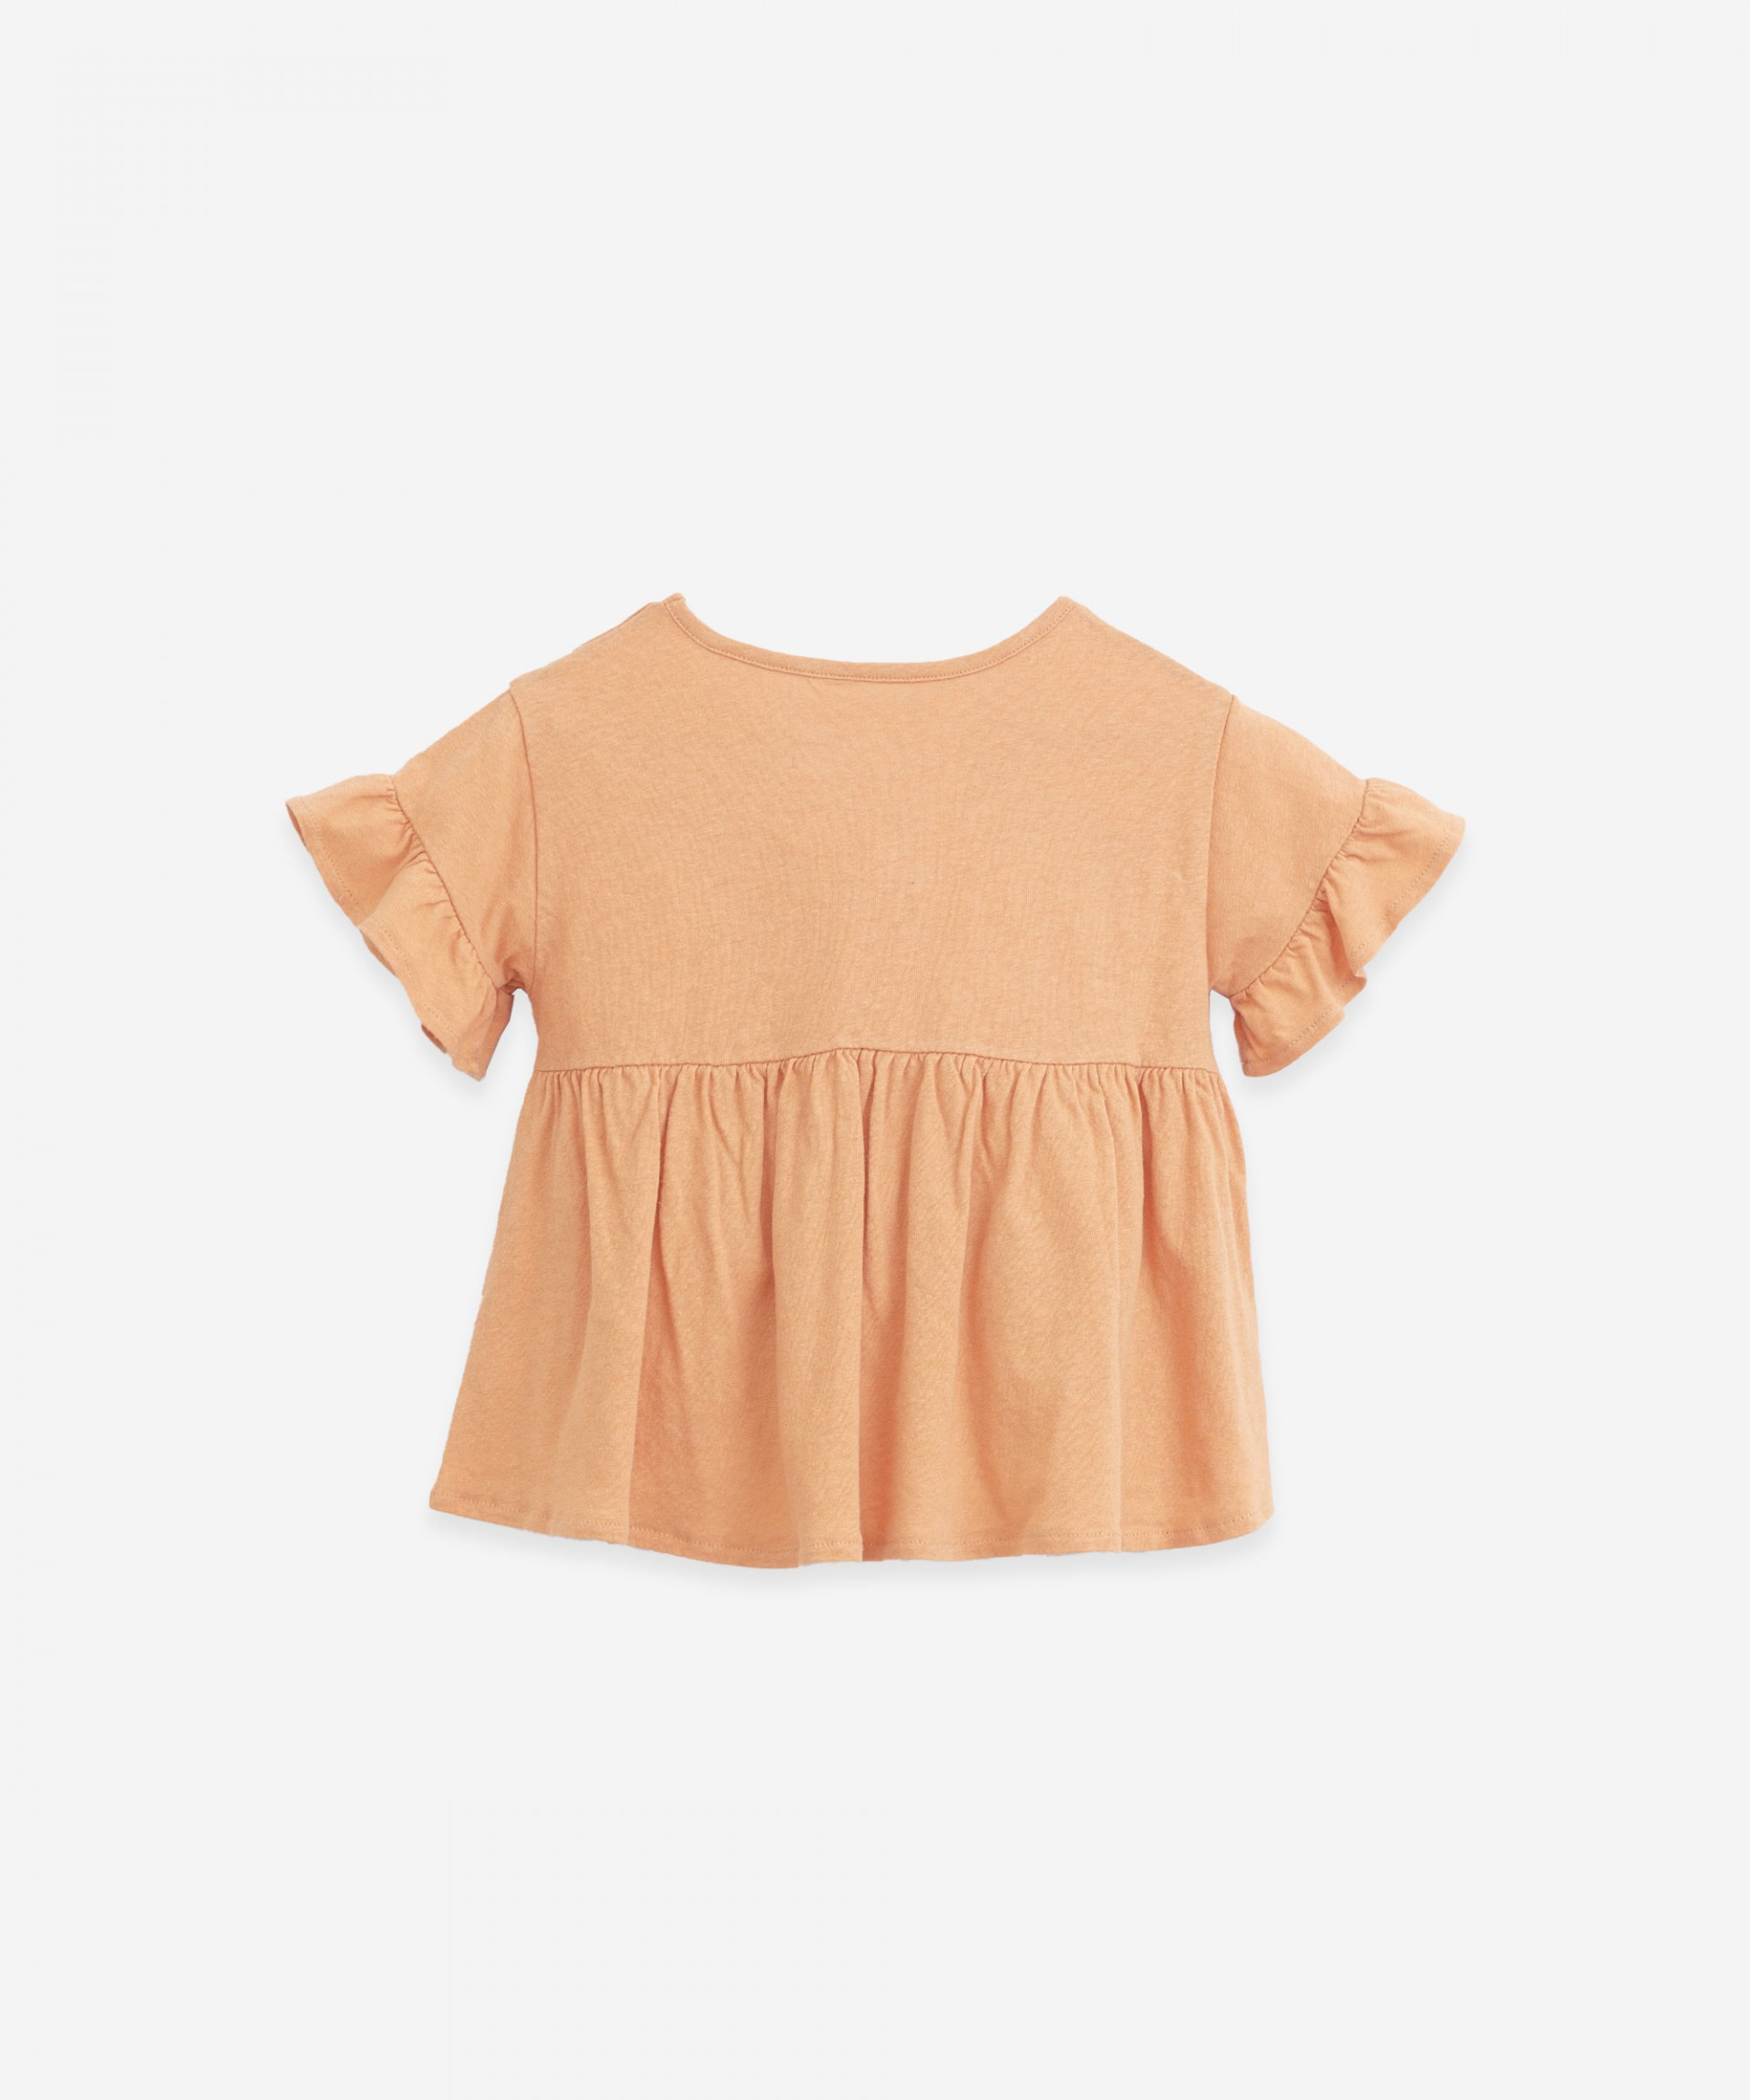 Tunic with frill on the sleeves | Botany